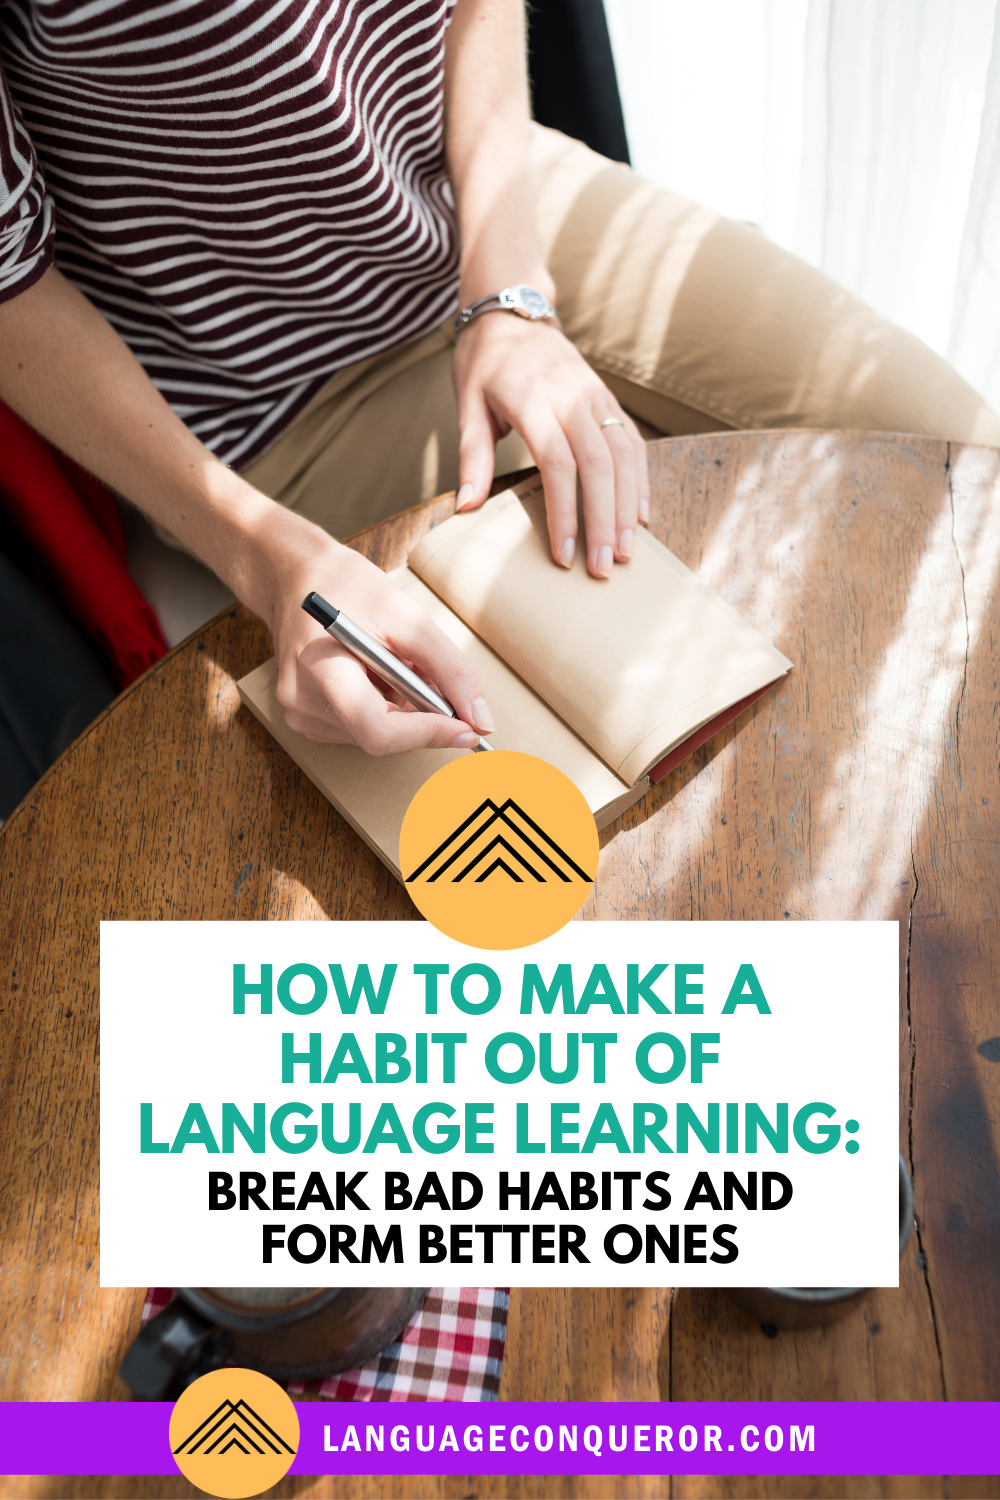 How to Make a Habit Out of Language Learning: Break Bad Habits And Form Better Ones